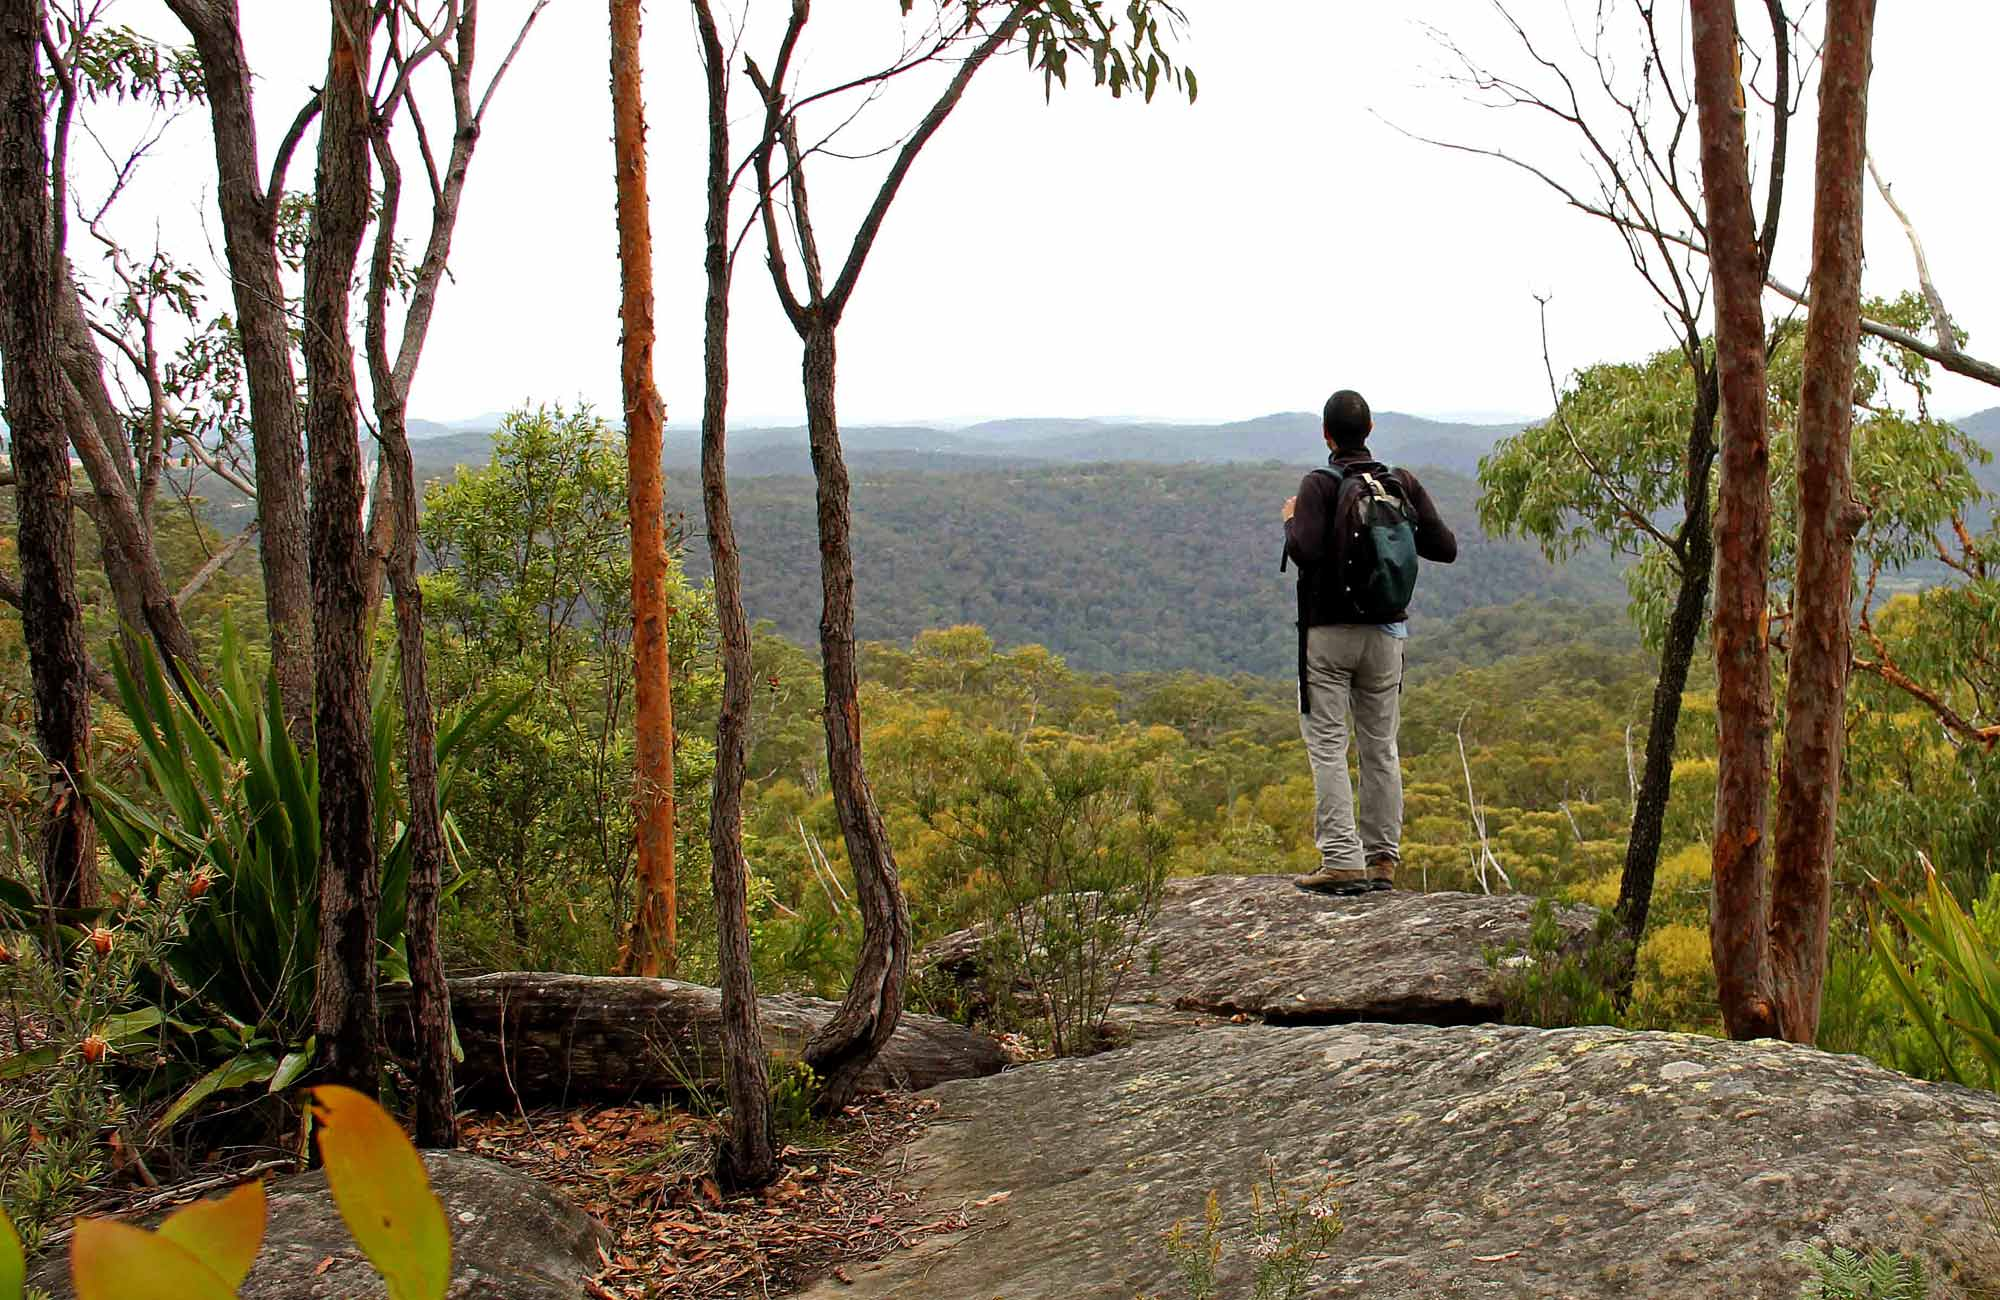 Mount Olive Lookout, Popran National Park. Photo: John Yurasek